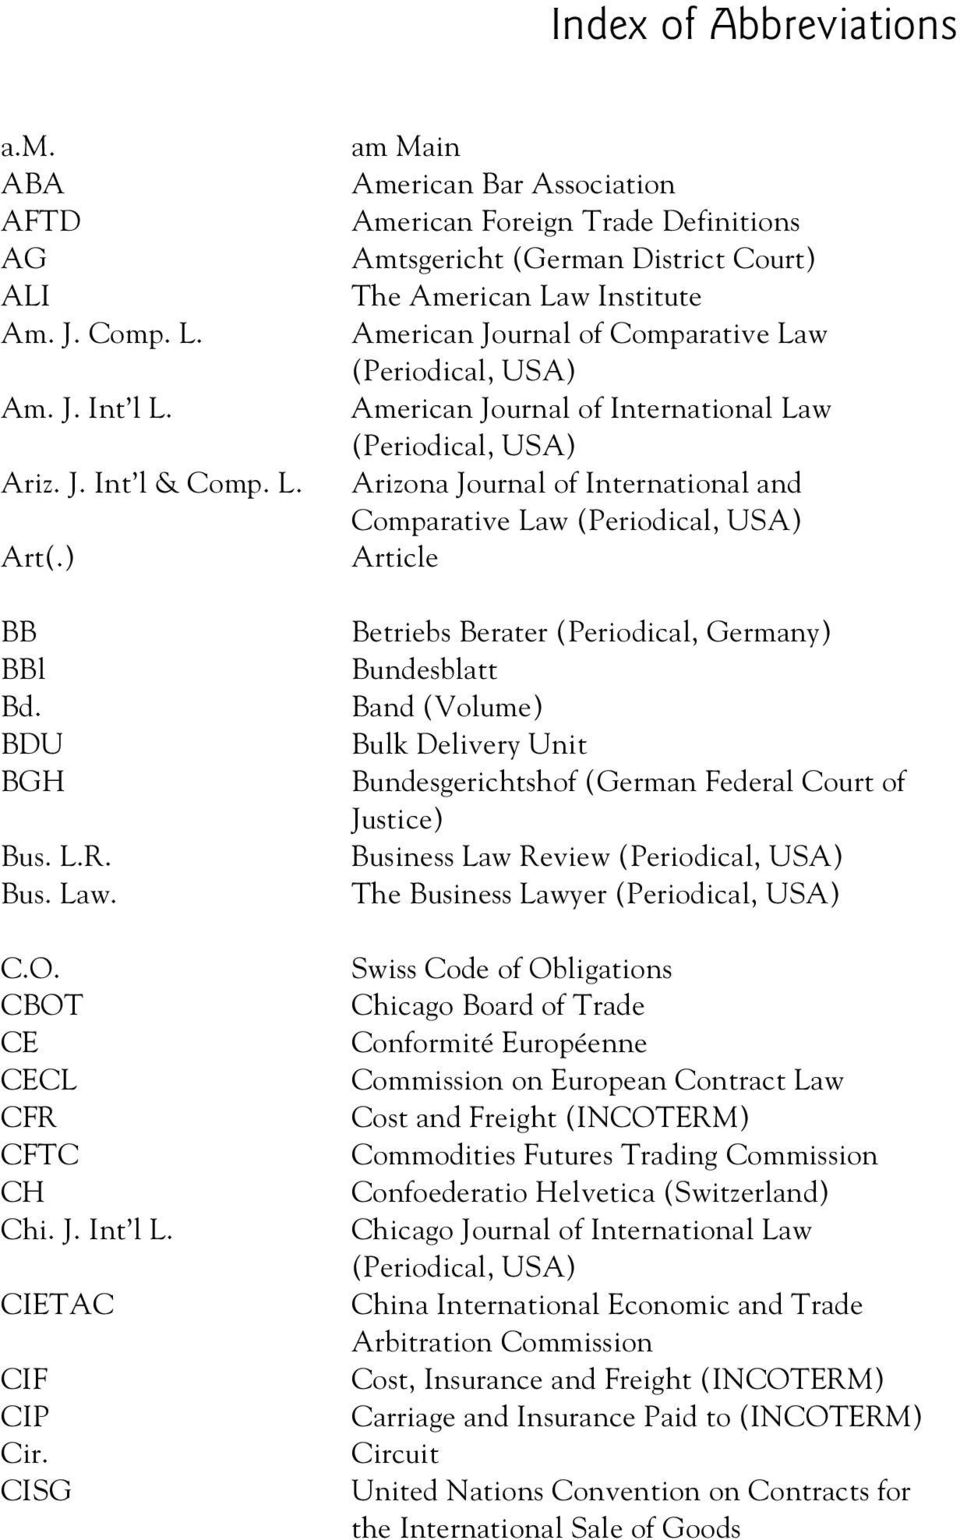 CISG am Main American Bar Association American Foreign Trade Definitions Amtsgericht (German District Court) The American Law Institute American Journal of Comparative Law (Periodical, USA) American